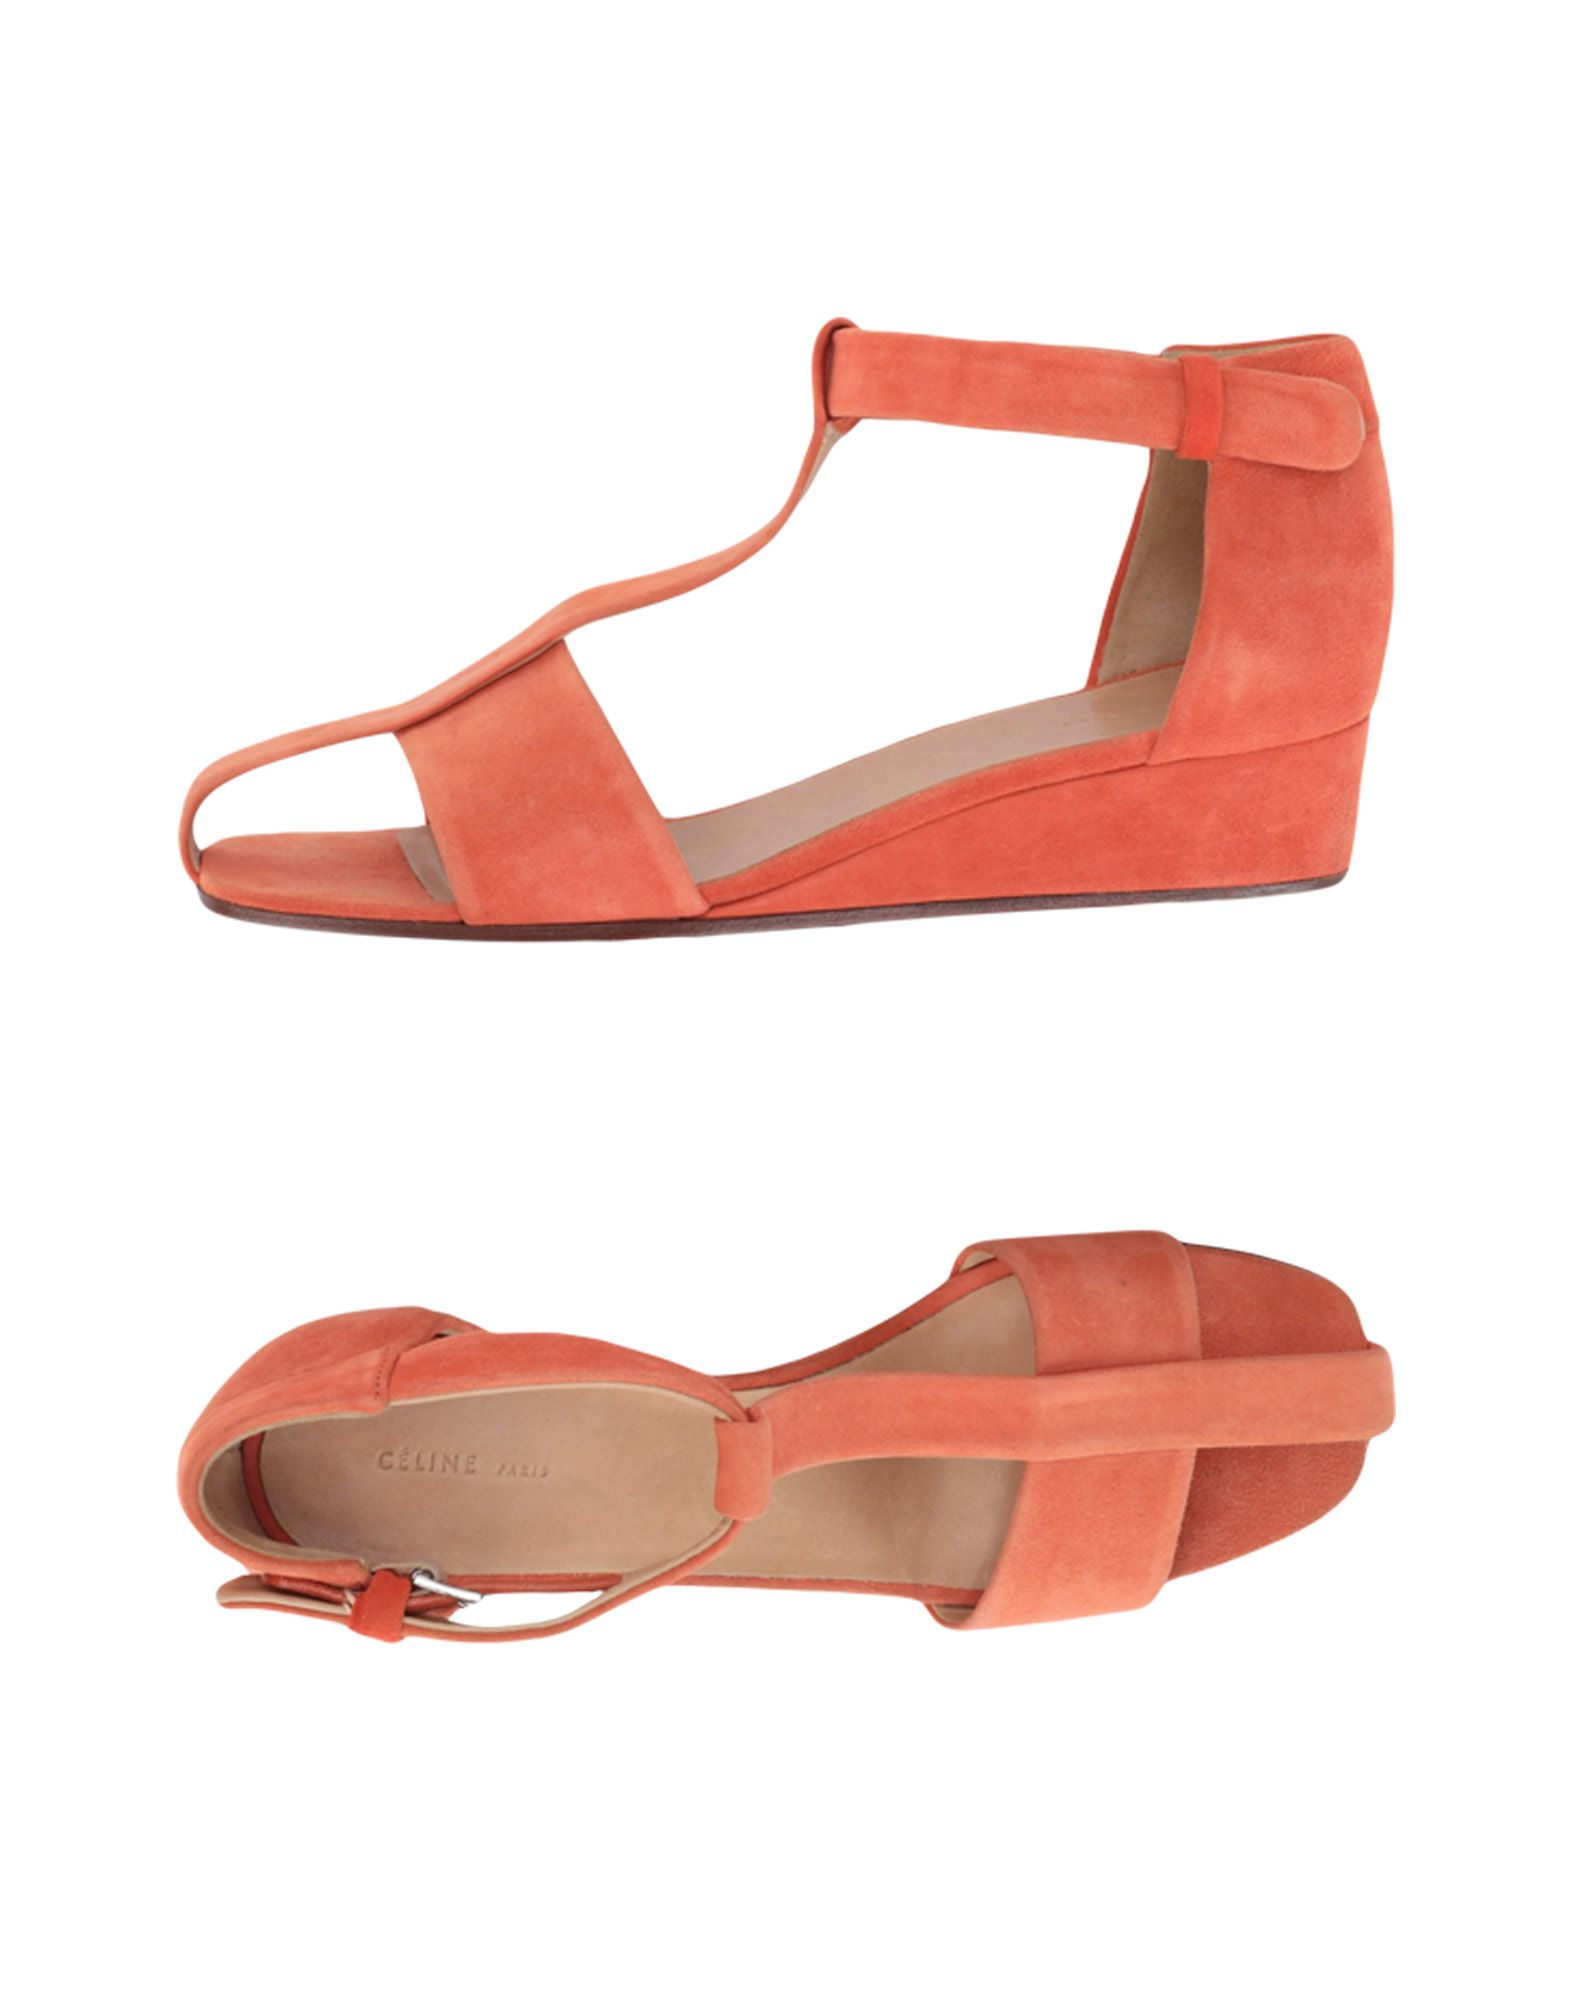 Celine Sandals Sandals - Women Celine Sandals Celine online on  United Kingdom - 11499818BF 12df04